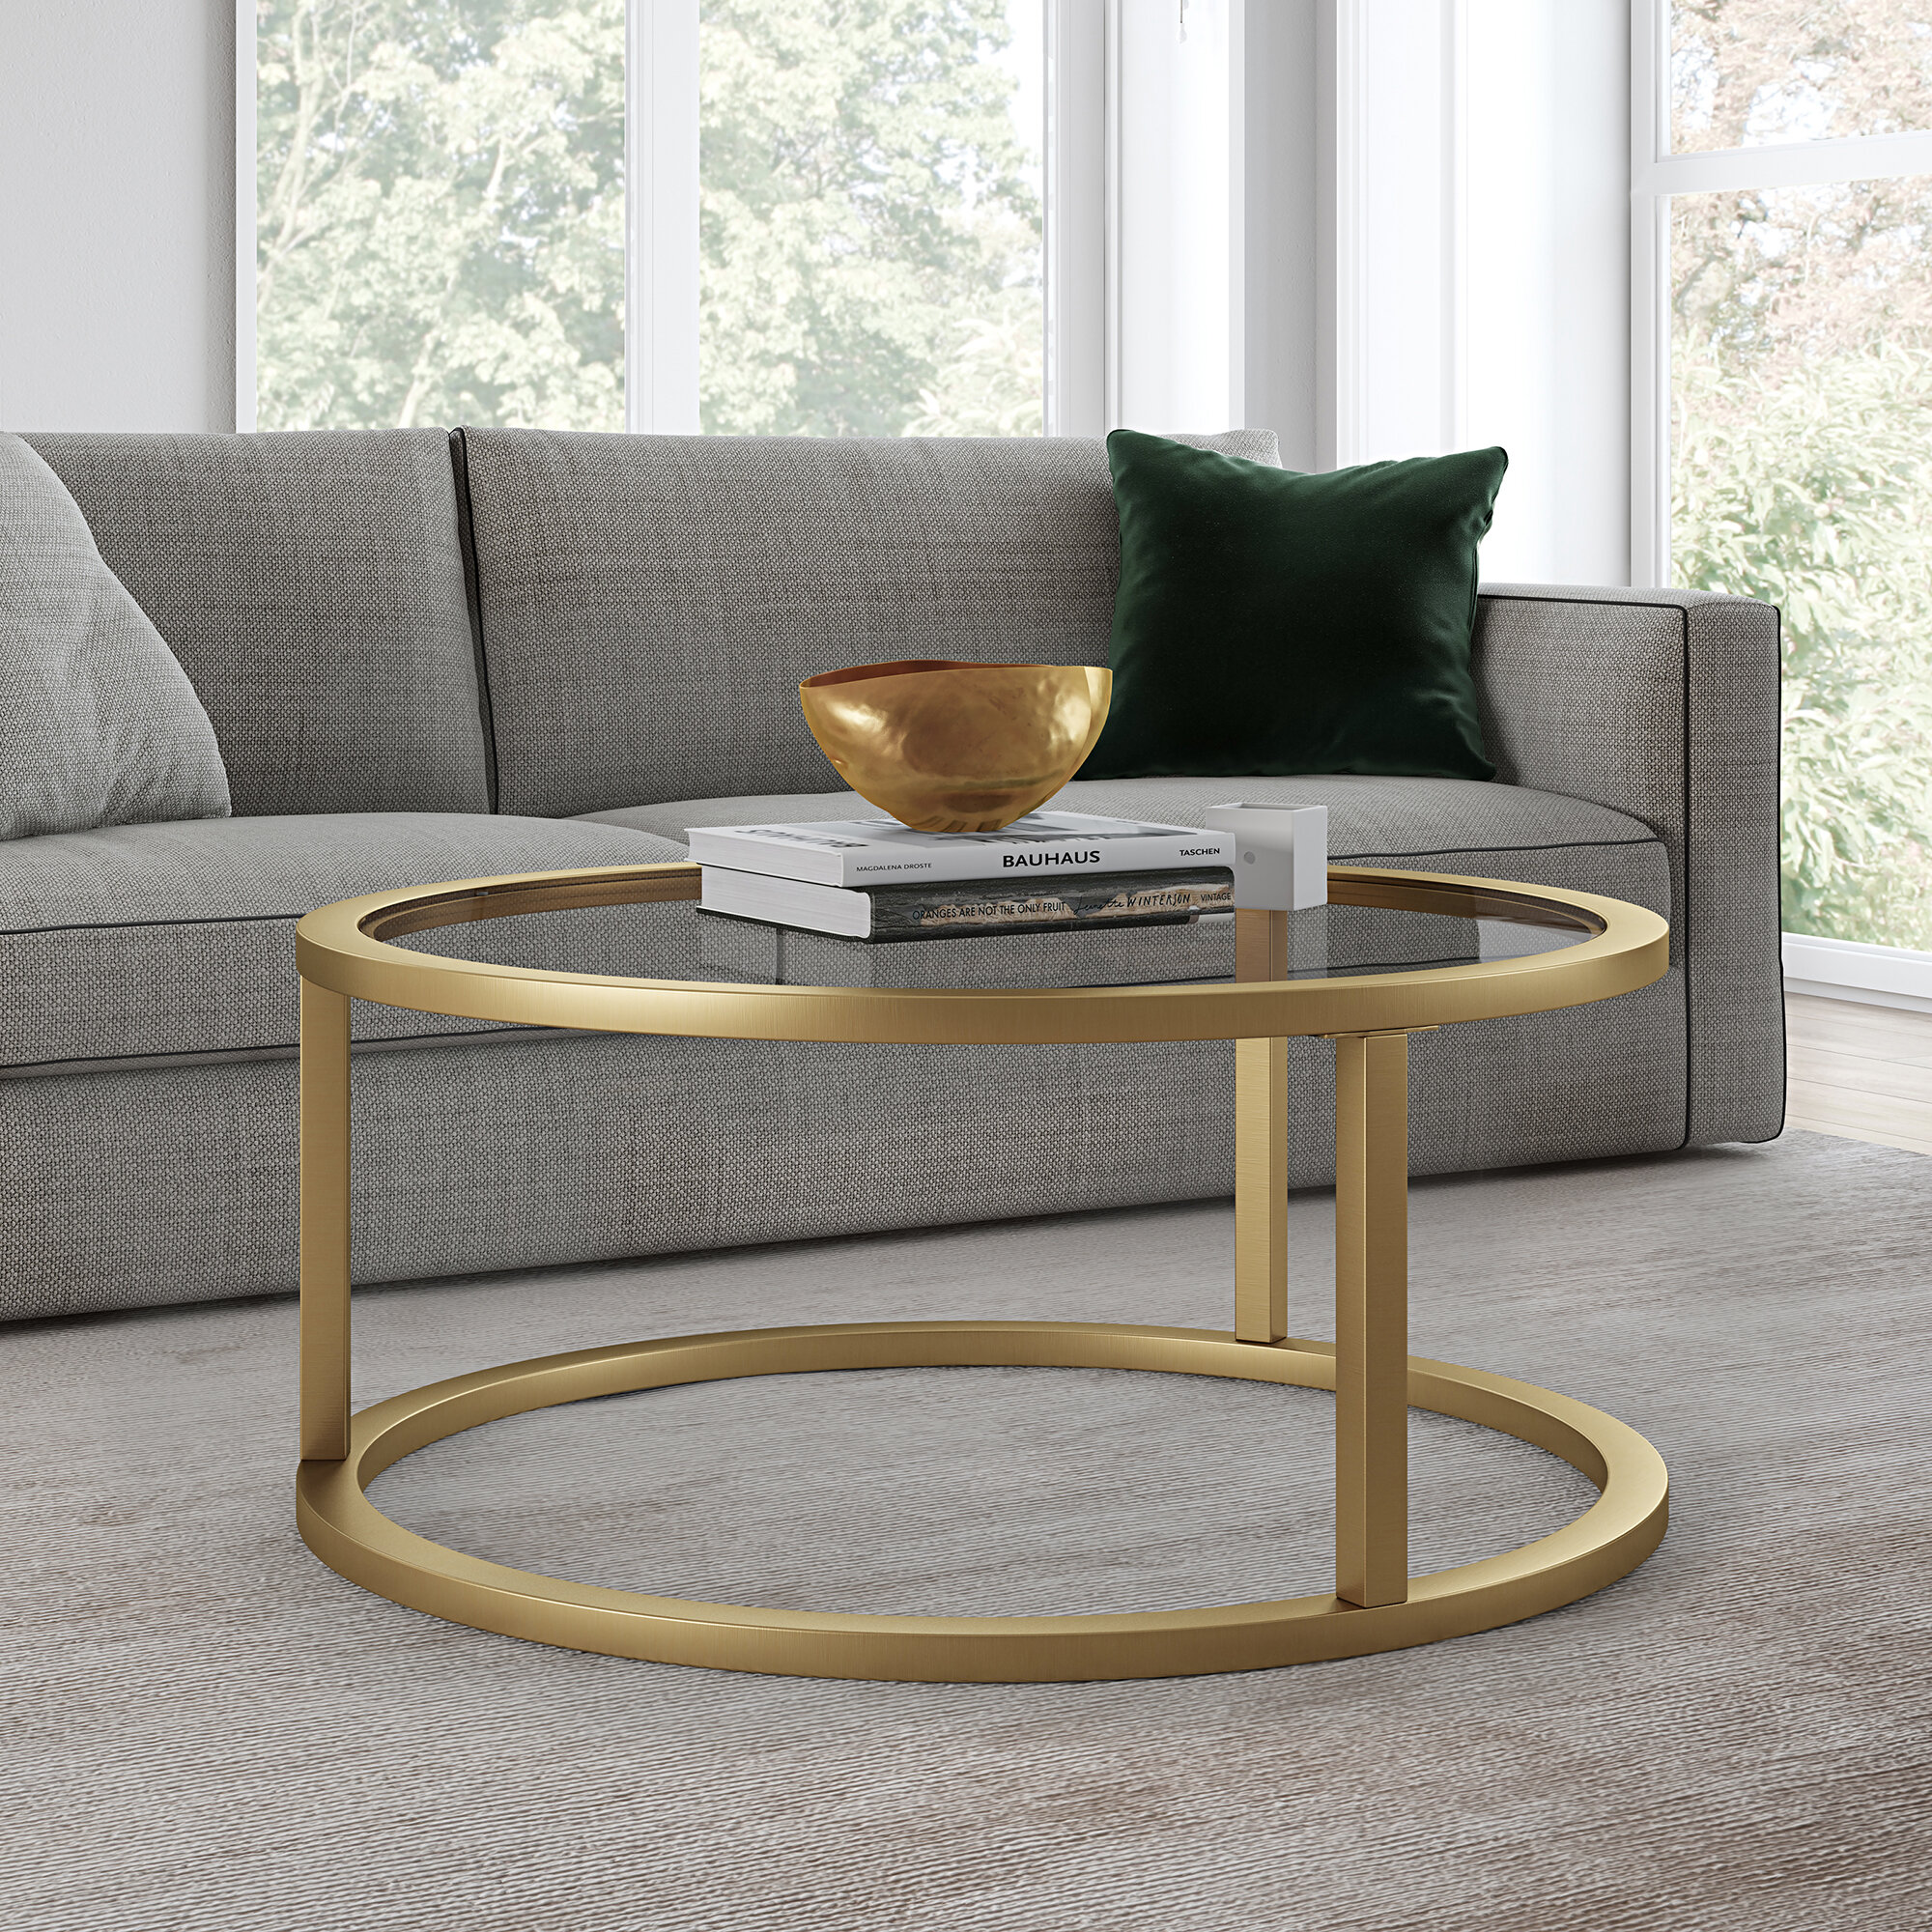 Brass Round Coffee Tables You Ll Love In 2021 Wayfair